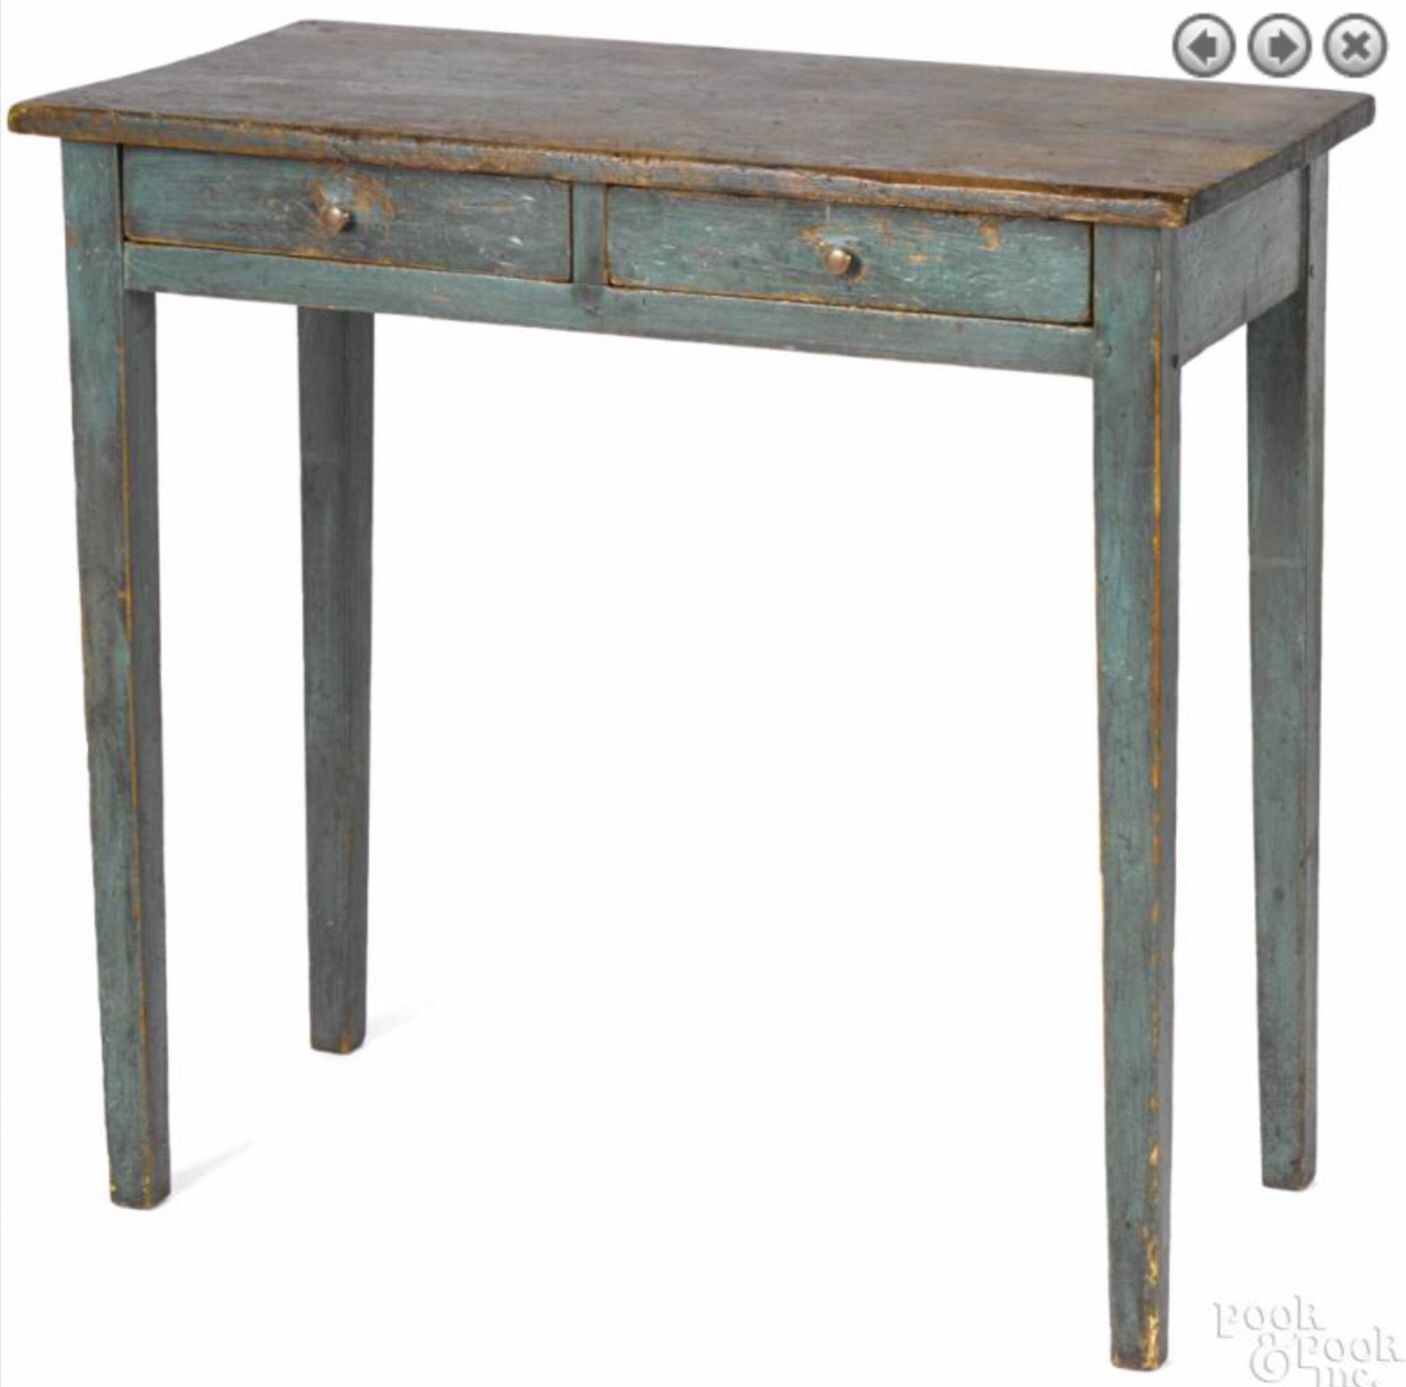 Pook & Pook 1/16/16 Lot: 529.  Estimated: $400 - $800.  Realized Price: $1,968.  Description: Painted pine work table, 19th c., retaining an old blue surface, 29 1/2'' h., 31 1/2'' w., 16'' d. Provenance: The Estate of Mark and Joan Eaby, Brownstown, Lancaster County, Pennsylvania.  Condition: Overall good condition. Expected wear. Paint is old but not original.